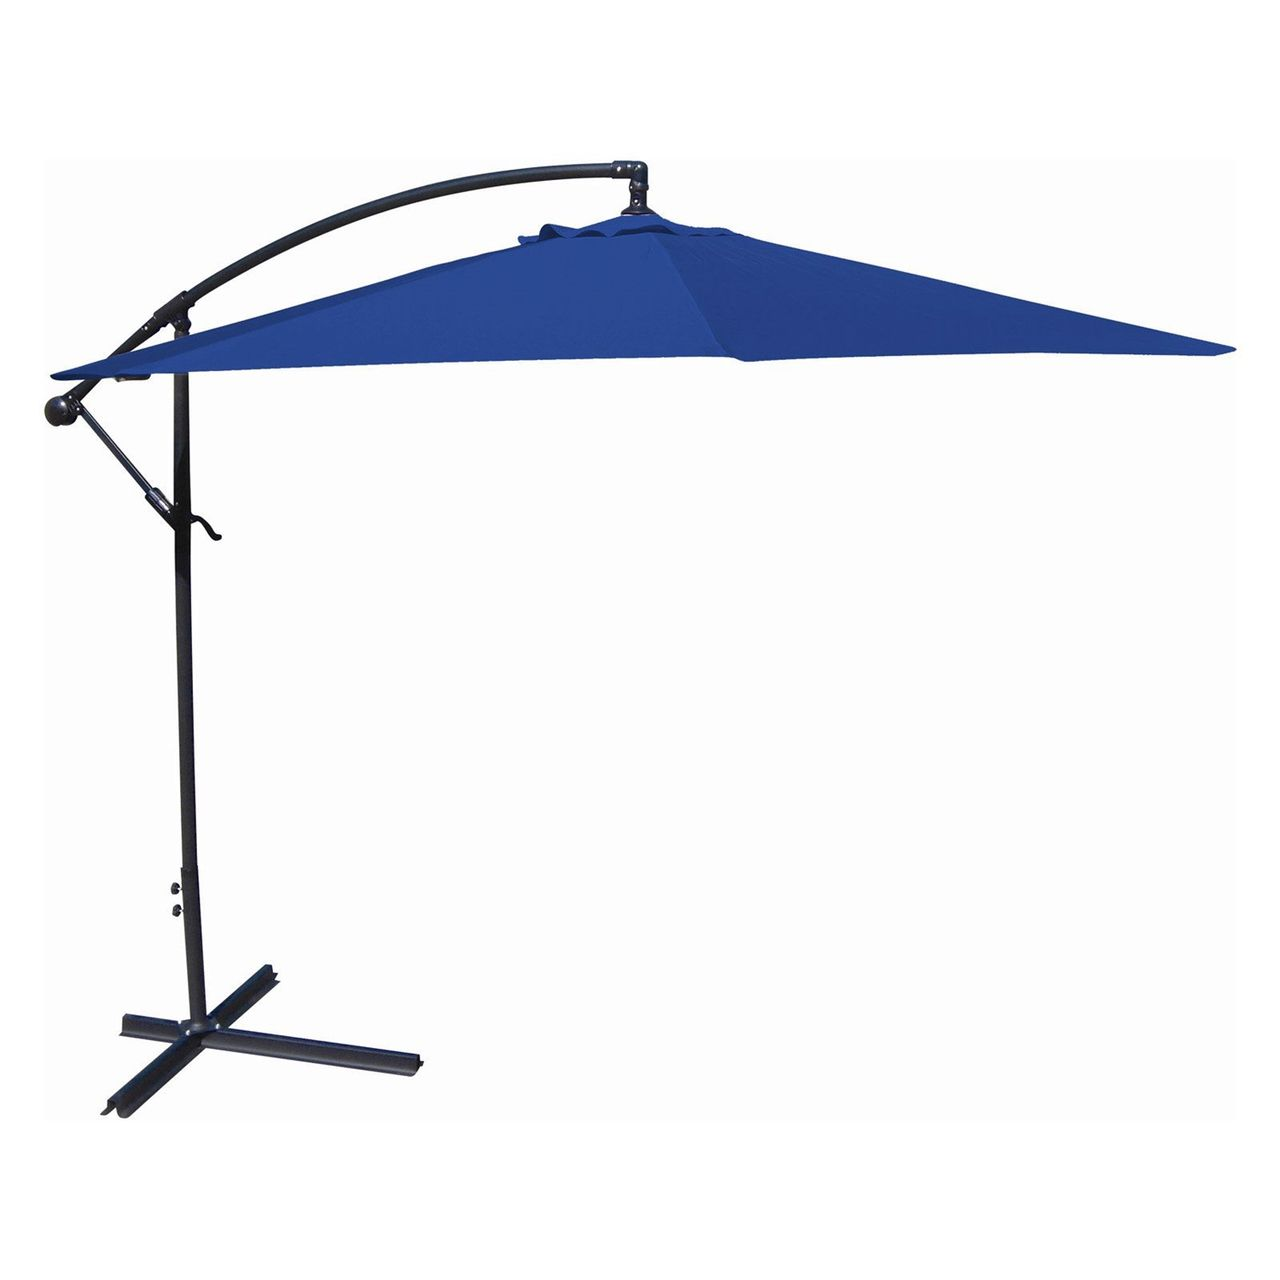 10 ft offset cantilever patio umbrella with royal blue canopy